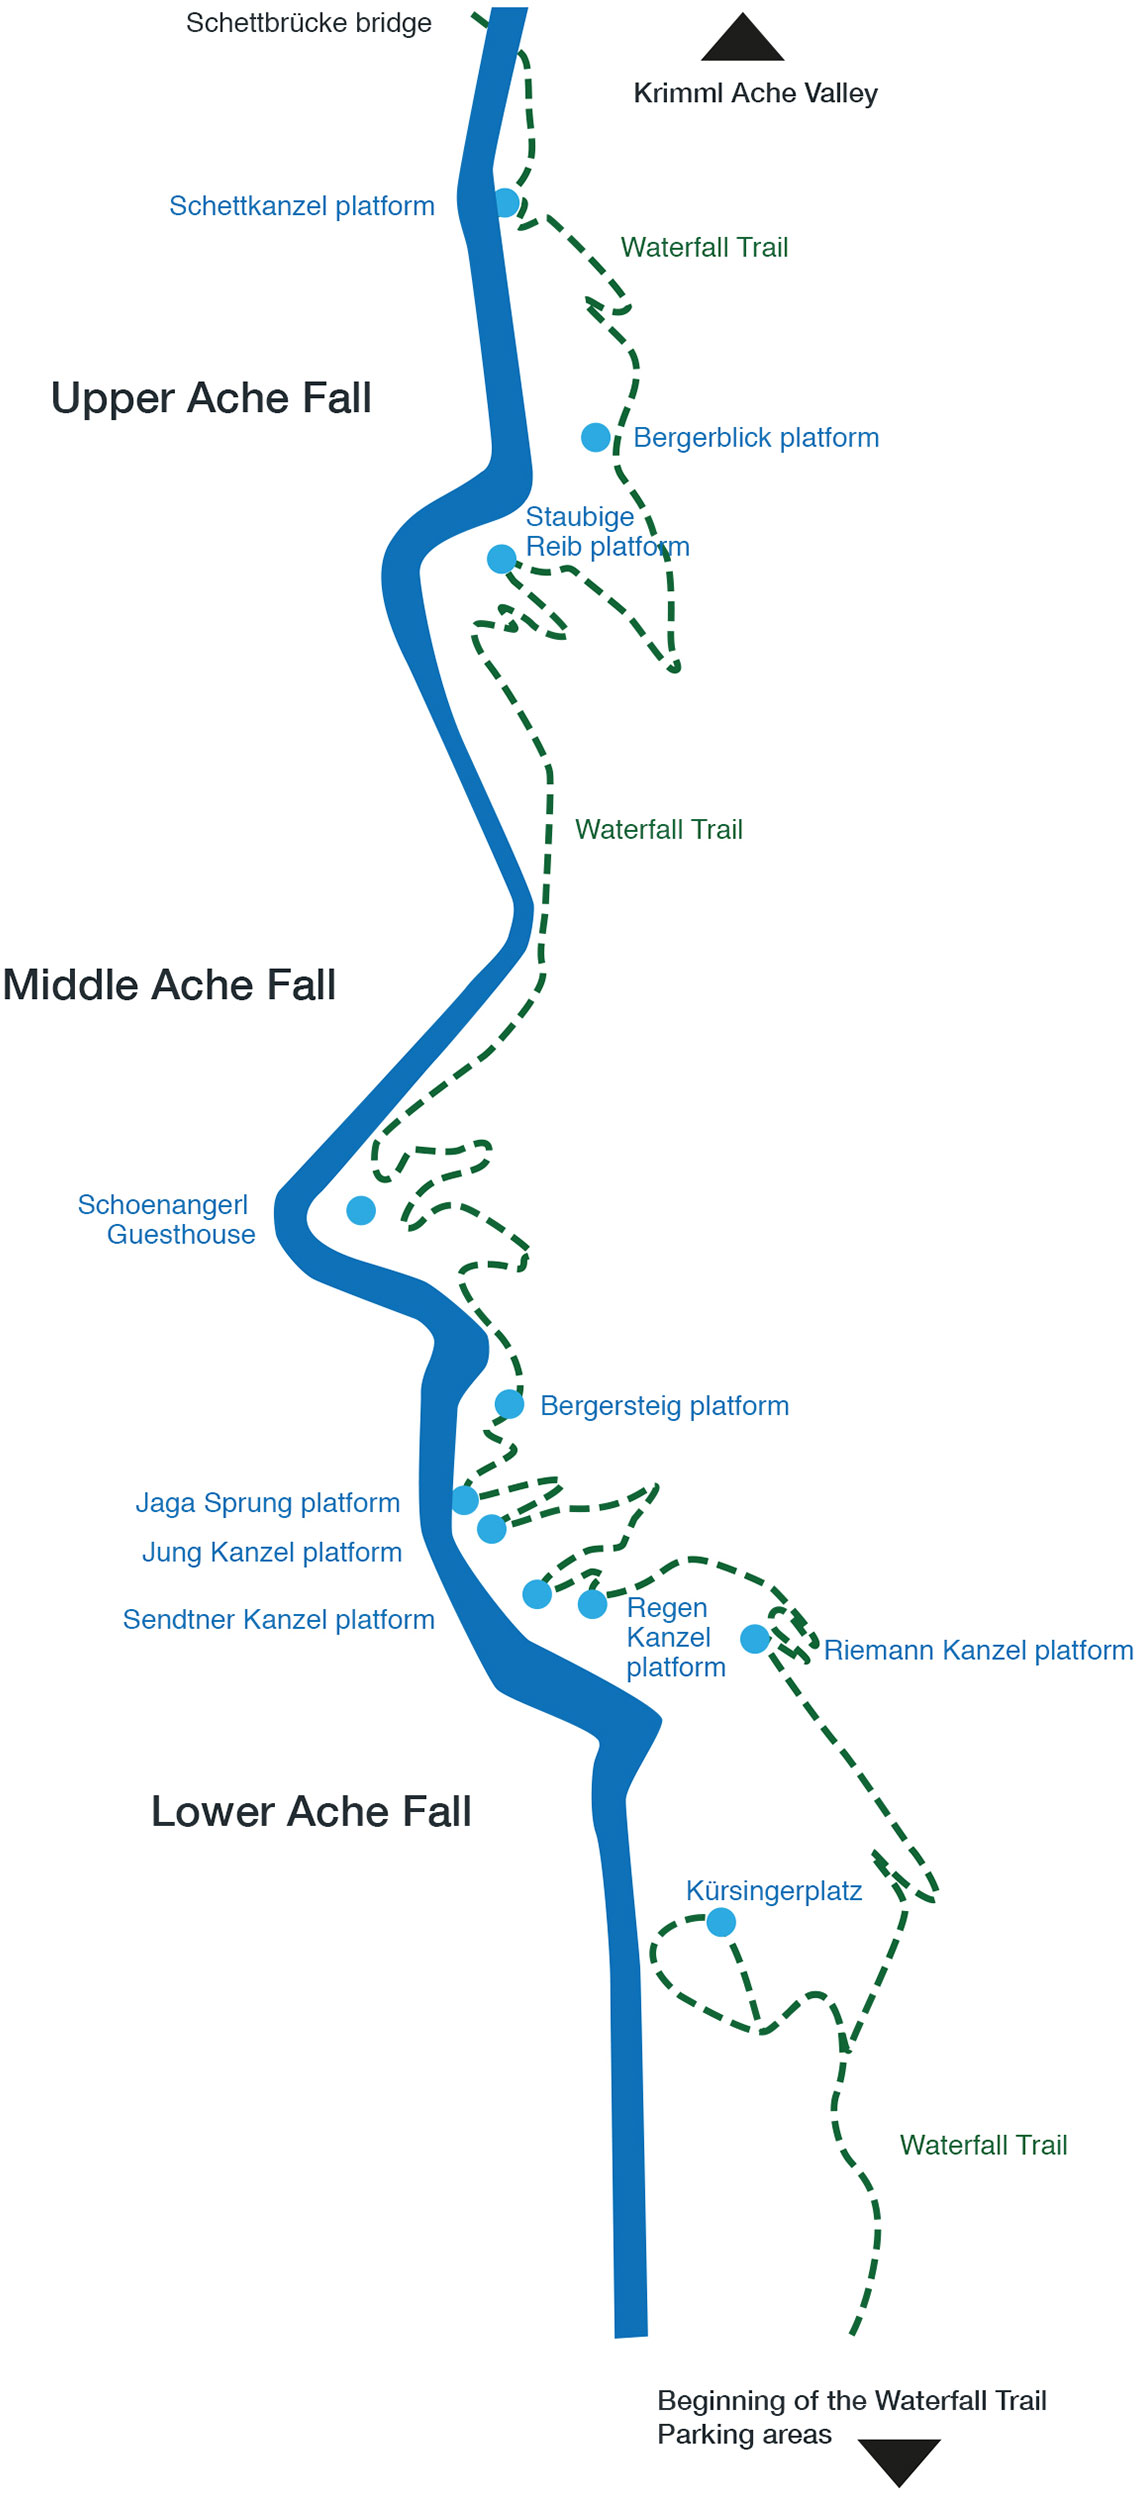 The Waterfall Trail